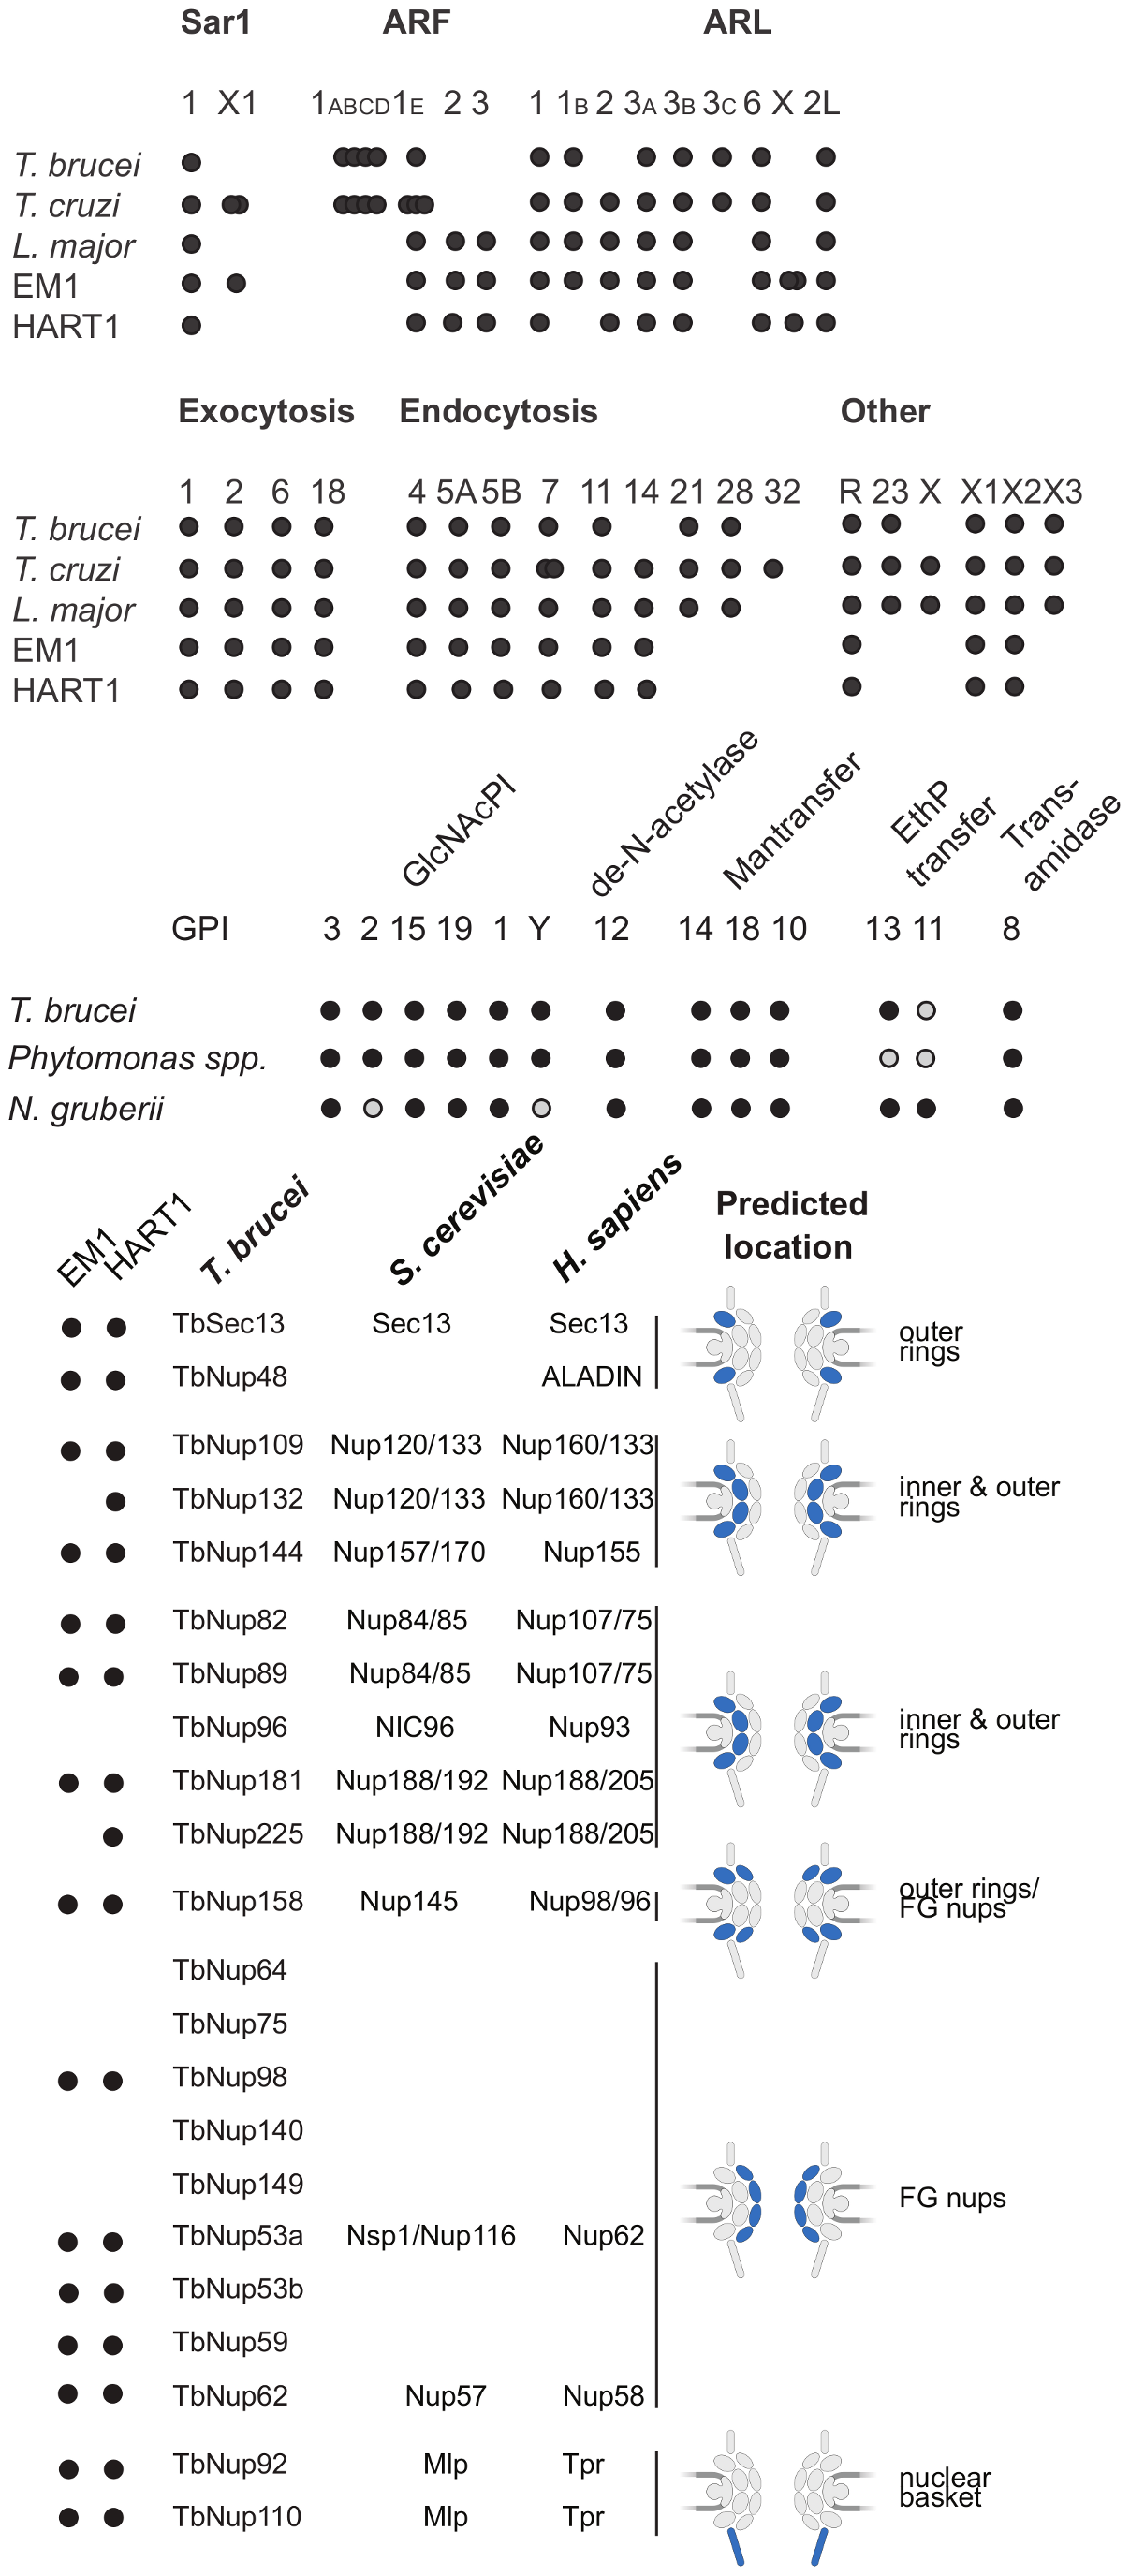 ARF, Rab NUP and GPI pathways in <i>Phytomonas</i> EM1 and HART1.